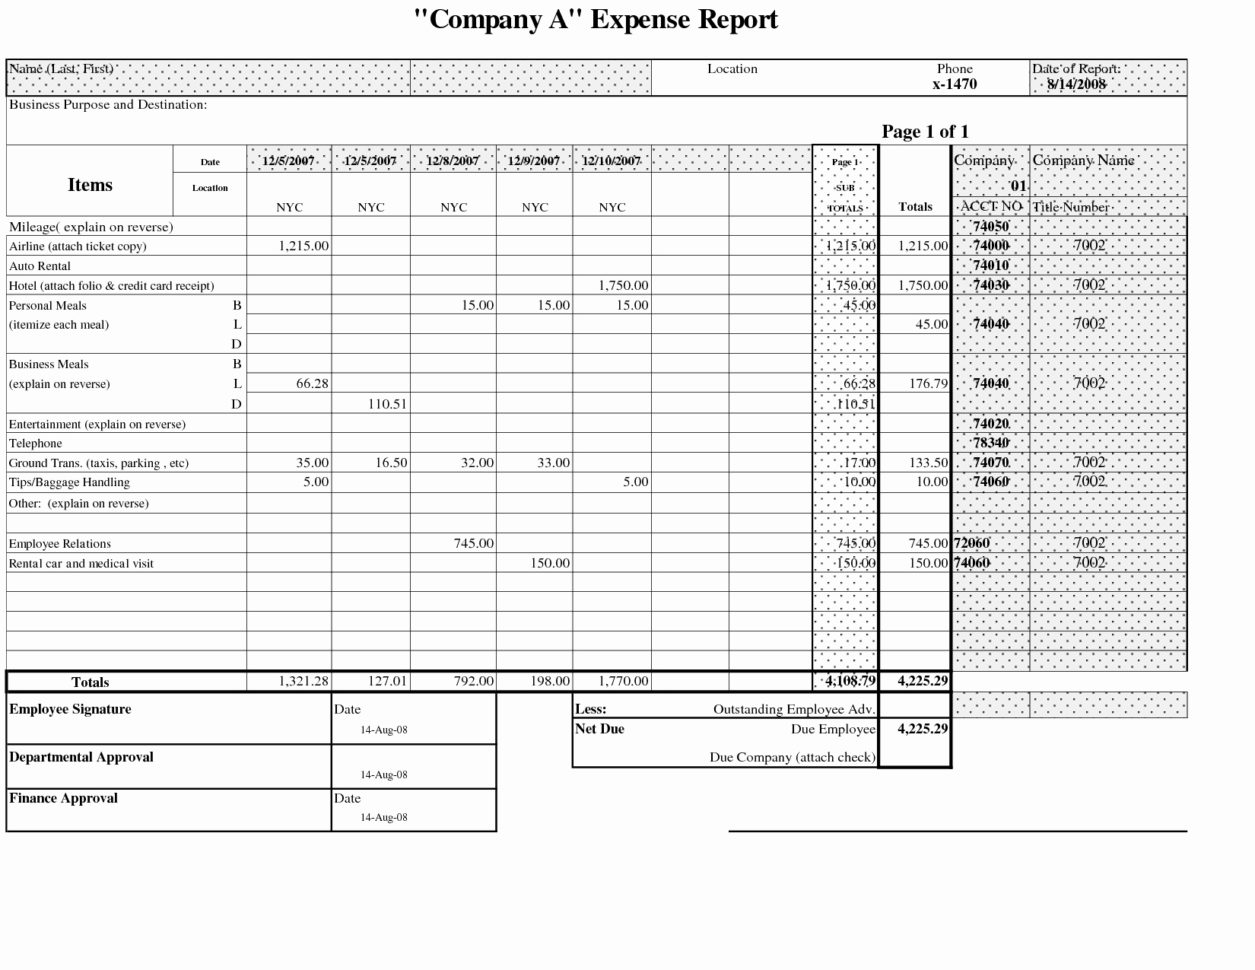 Real Estate Agent Expense Tracking Spreadsheet Awesome Real Estate For Expenses Tracking Spreadsheet